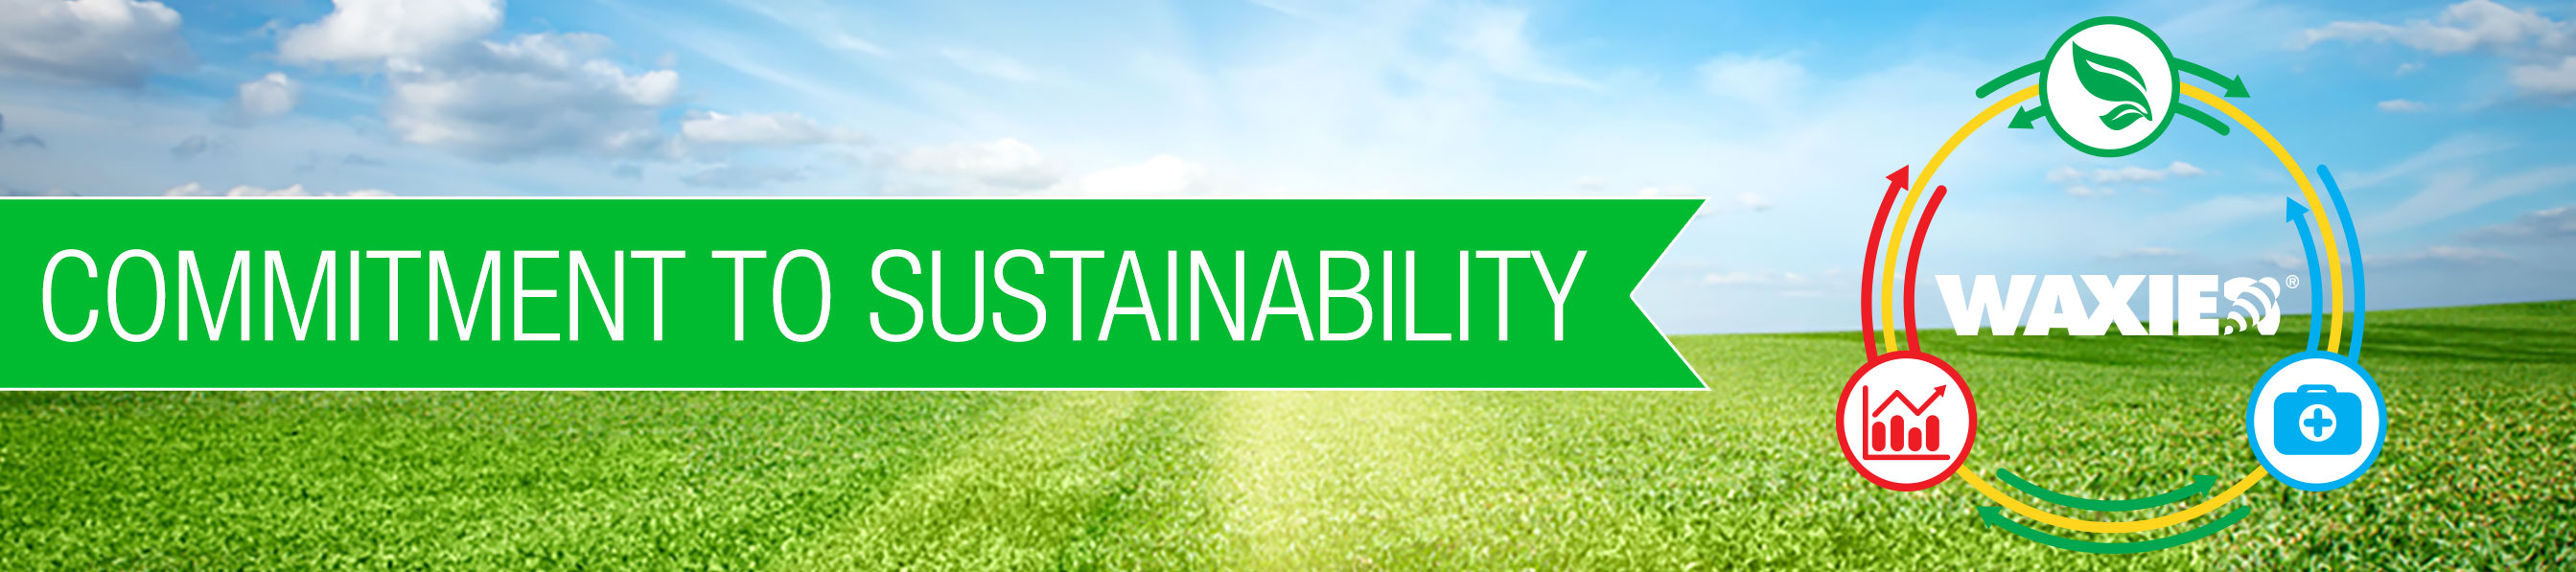 commitment-to-sustainability-2